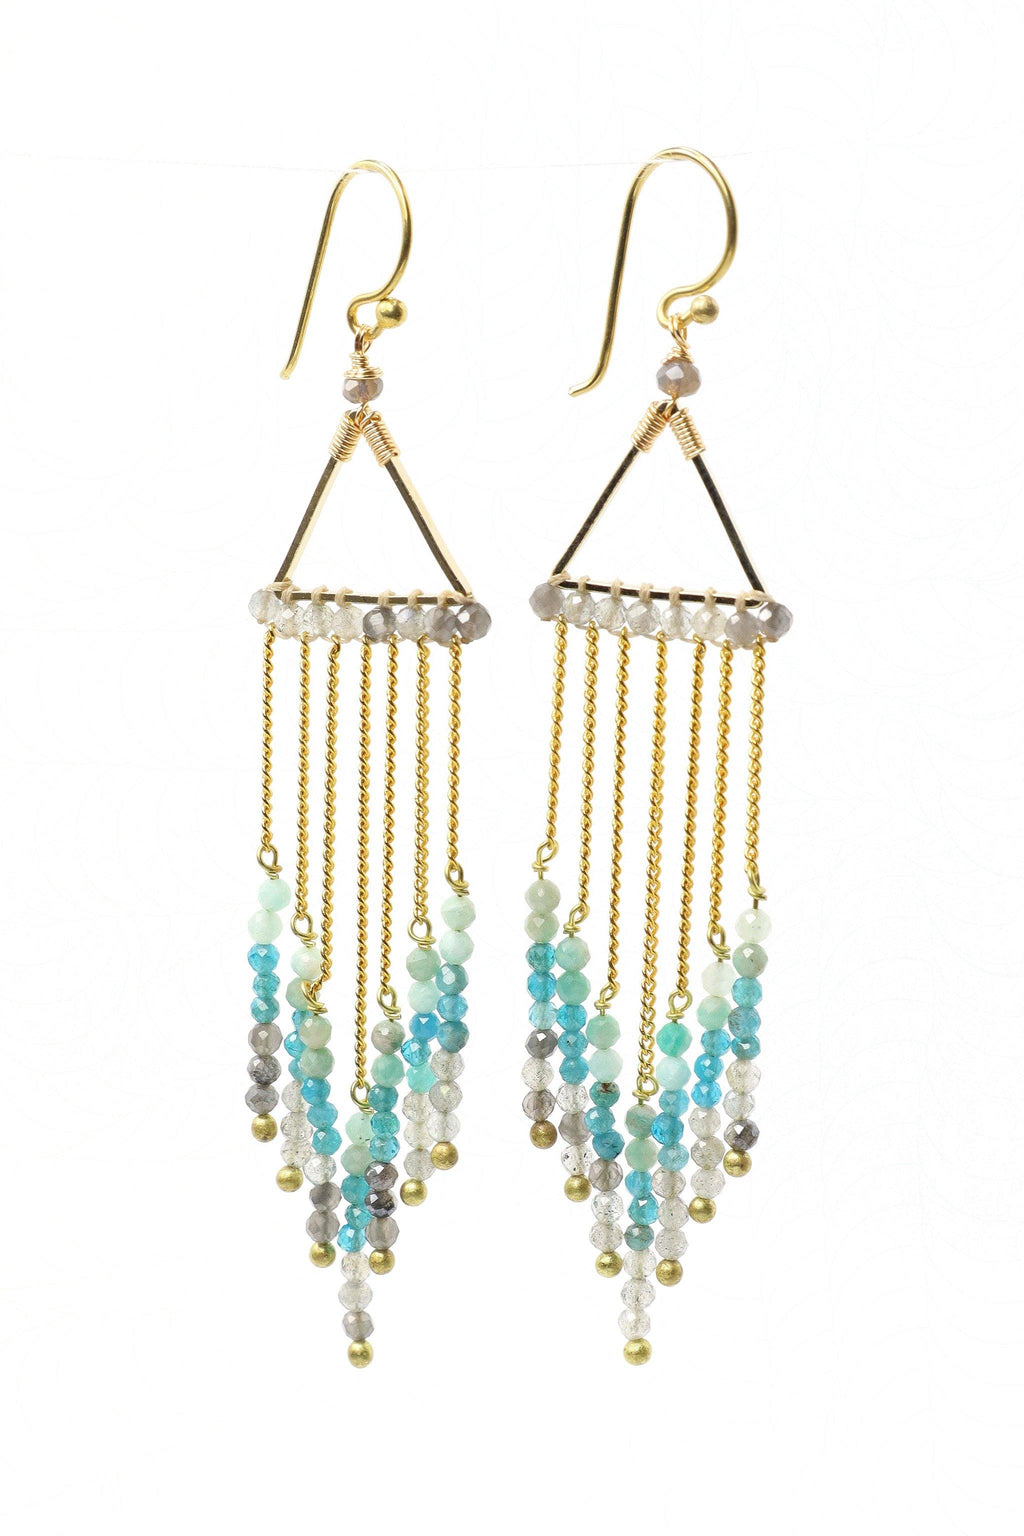 These waterfall statement earrings are a show stopper. They feature beautiful faceted aquamarine, apatite, and smokey quartz gemstones hanging on a gold chain from a gold triangle. They are handmade with love in Thailand. This is a Fairtrade Product.